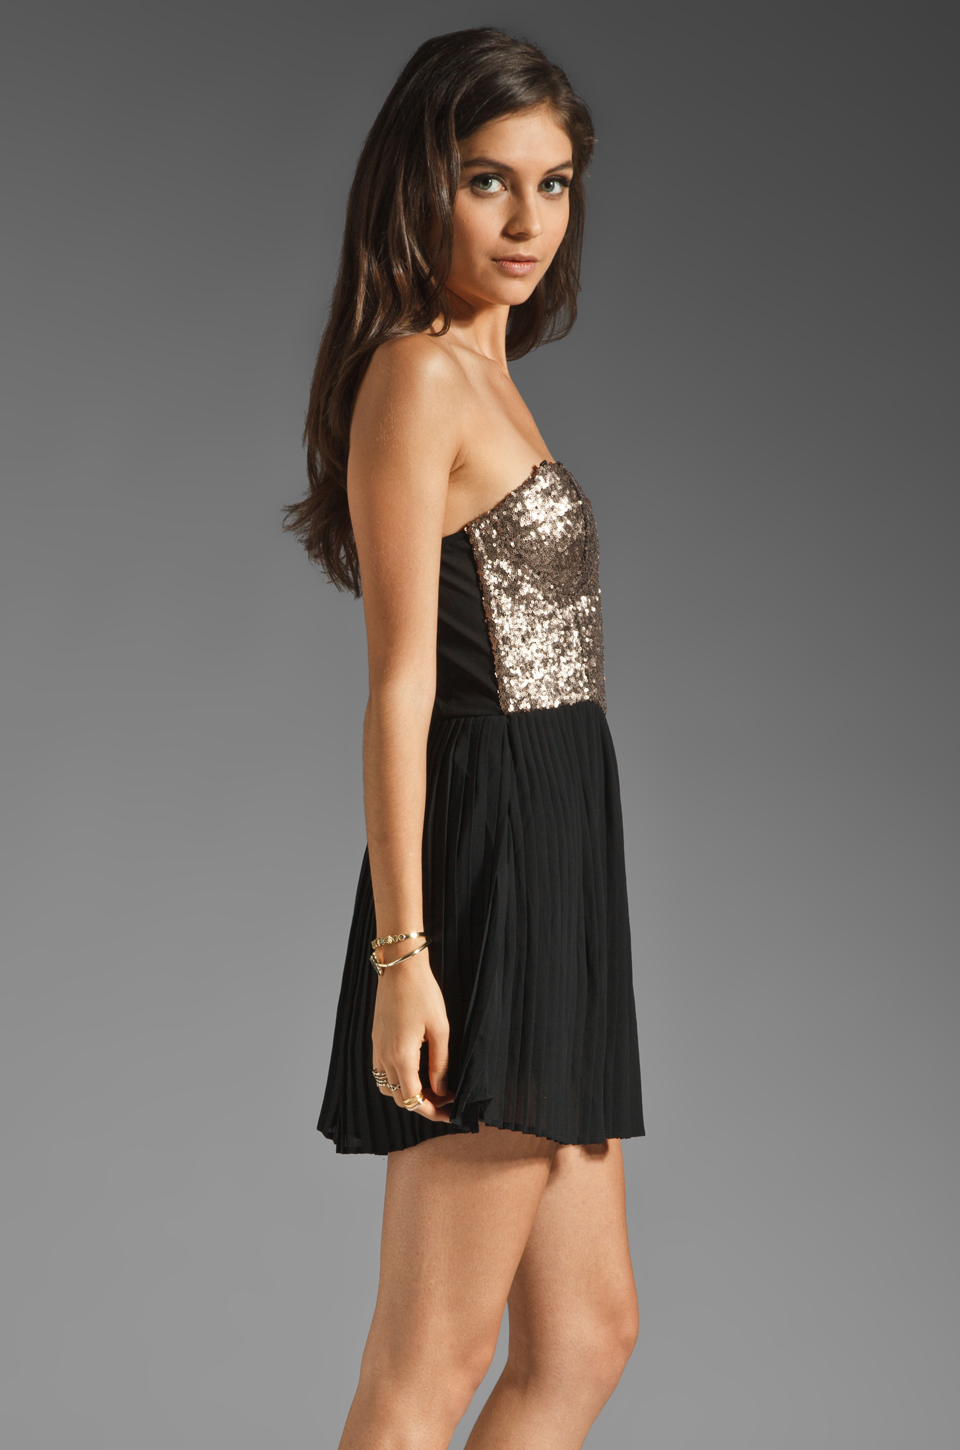 MINKPINK The Shining Sequin Mini Dress in Gold/Black